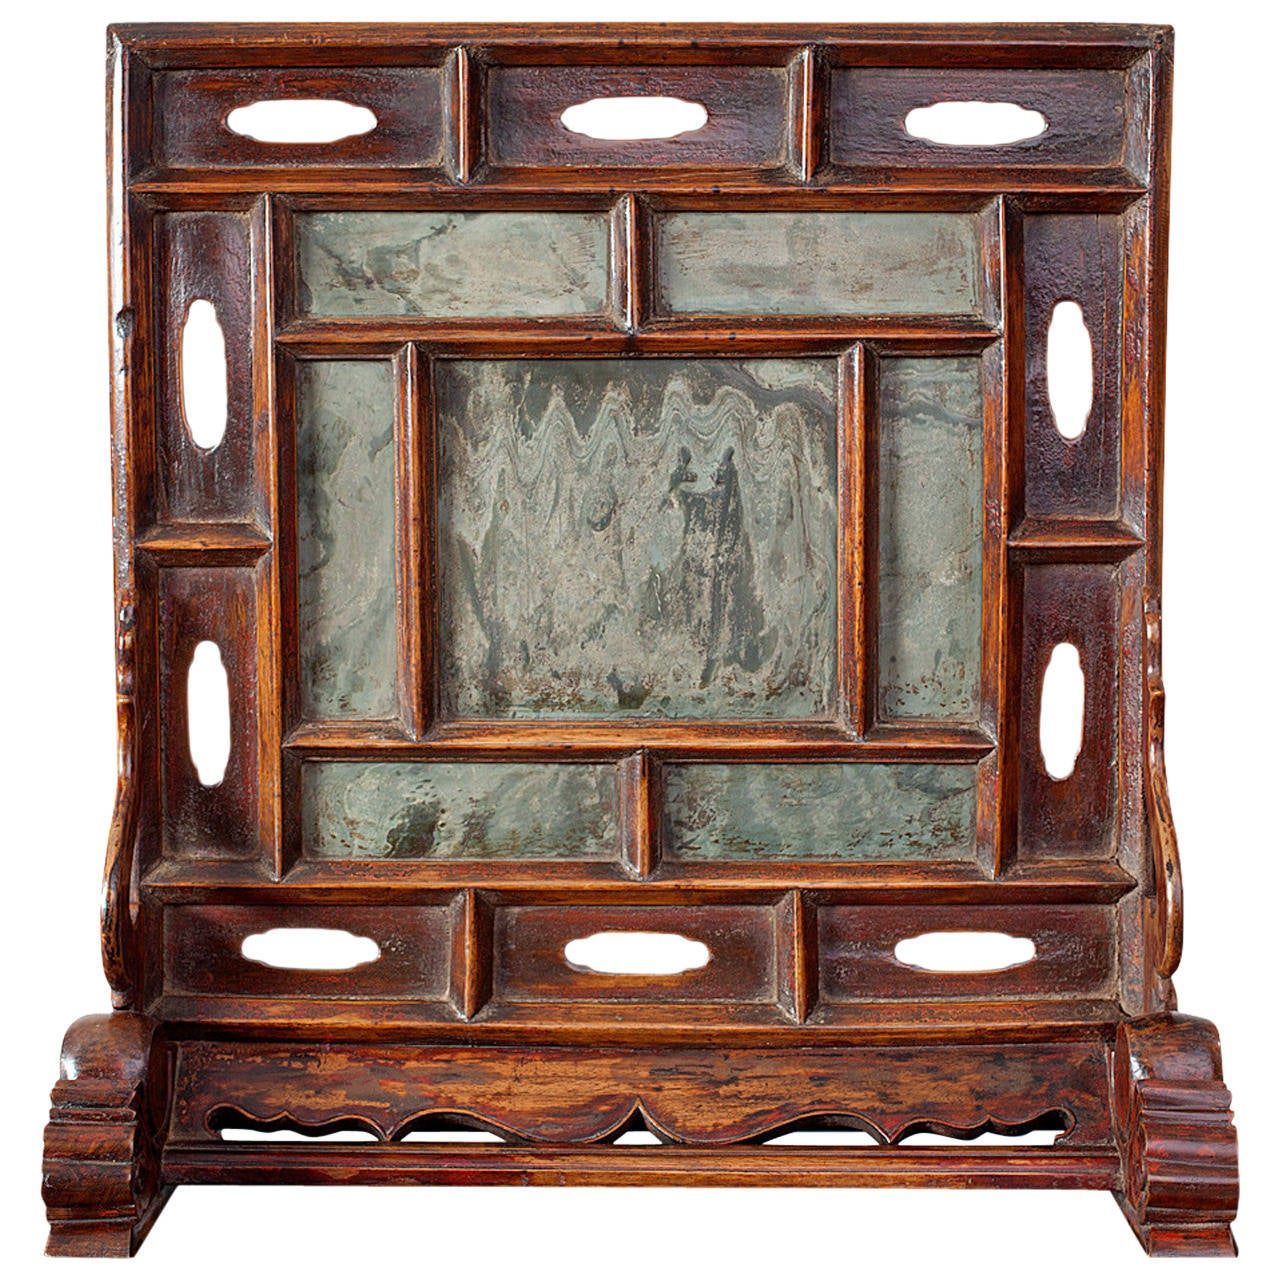 Rare Ming Dynasty Chinese Dreamstone Table Screen With